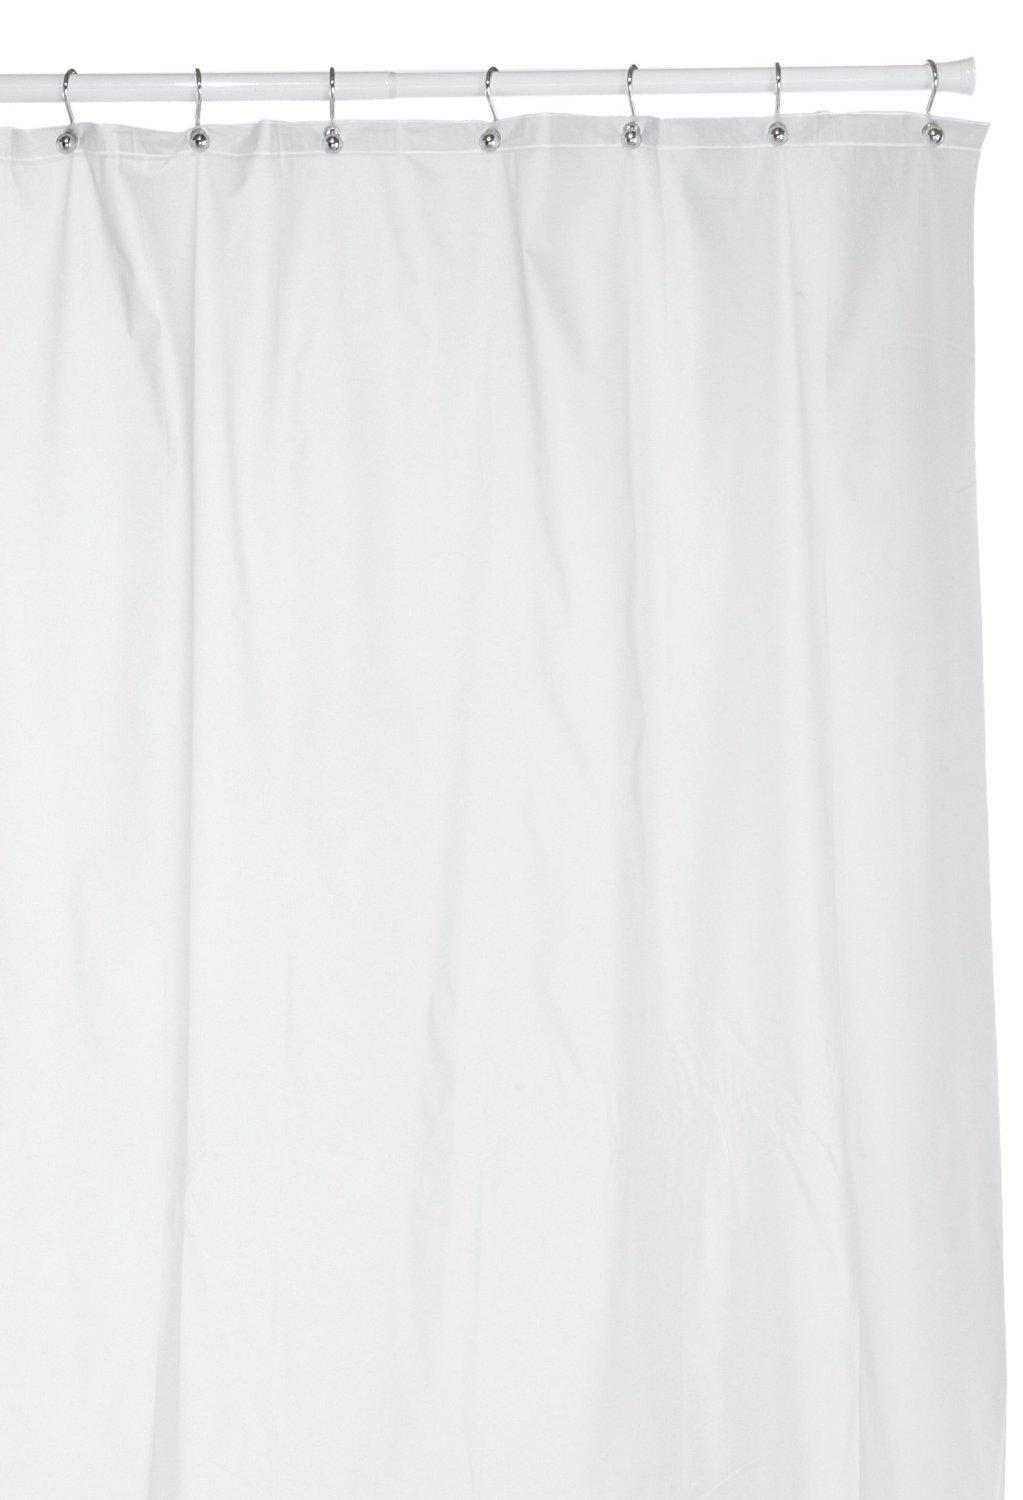 Hotel Quality 8 Gauge Vinyl Shower Curtain Liner Frost Clear